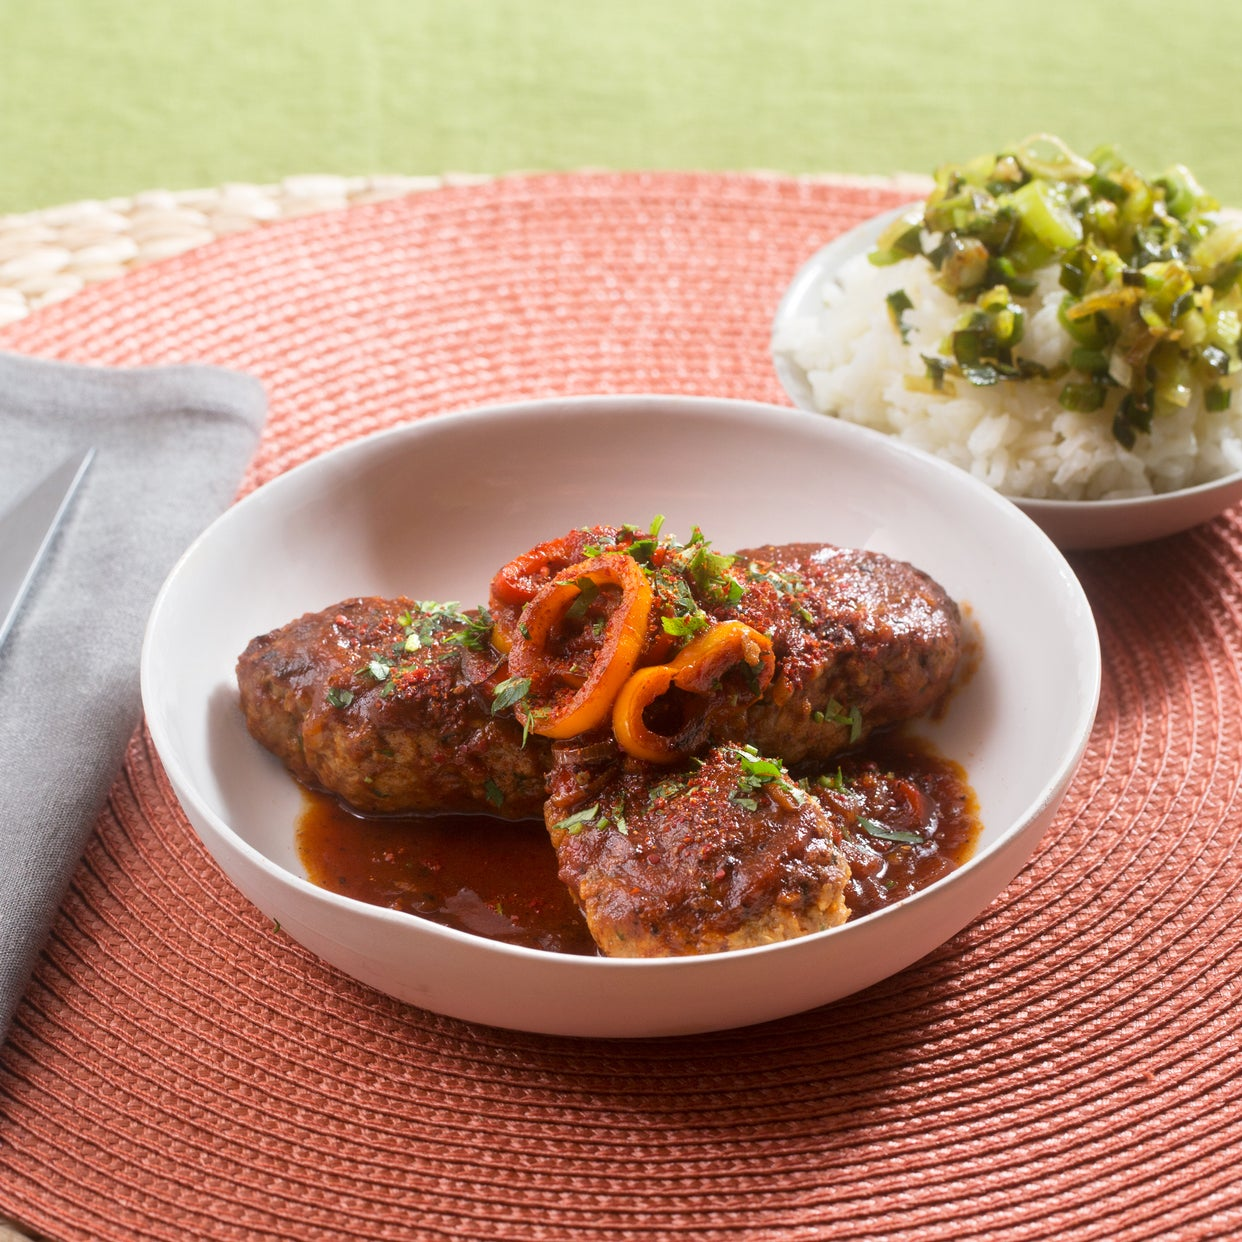 Basque-Style Lamb & Beef Piperade with Sweet Peppers & Garlic Rice